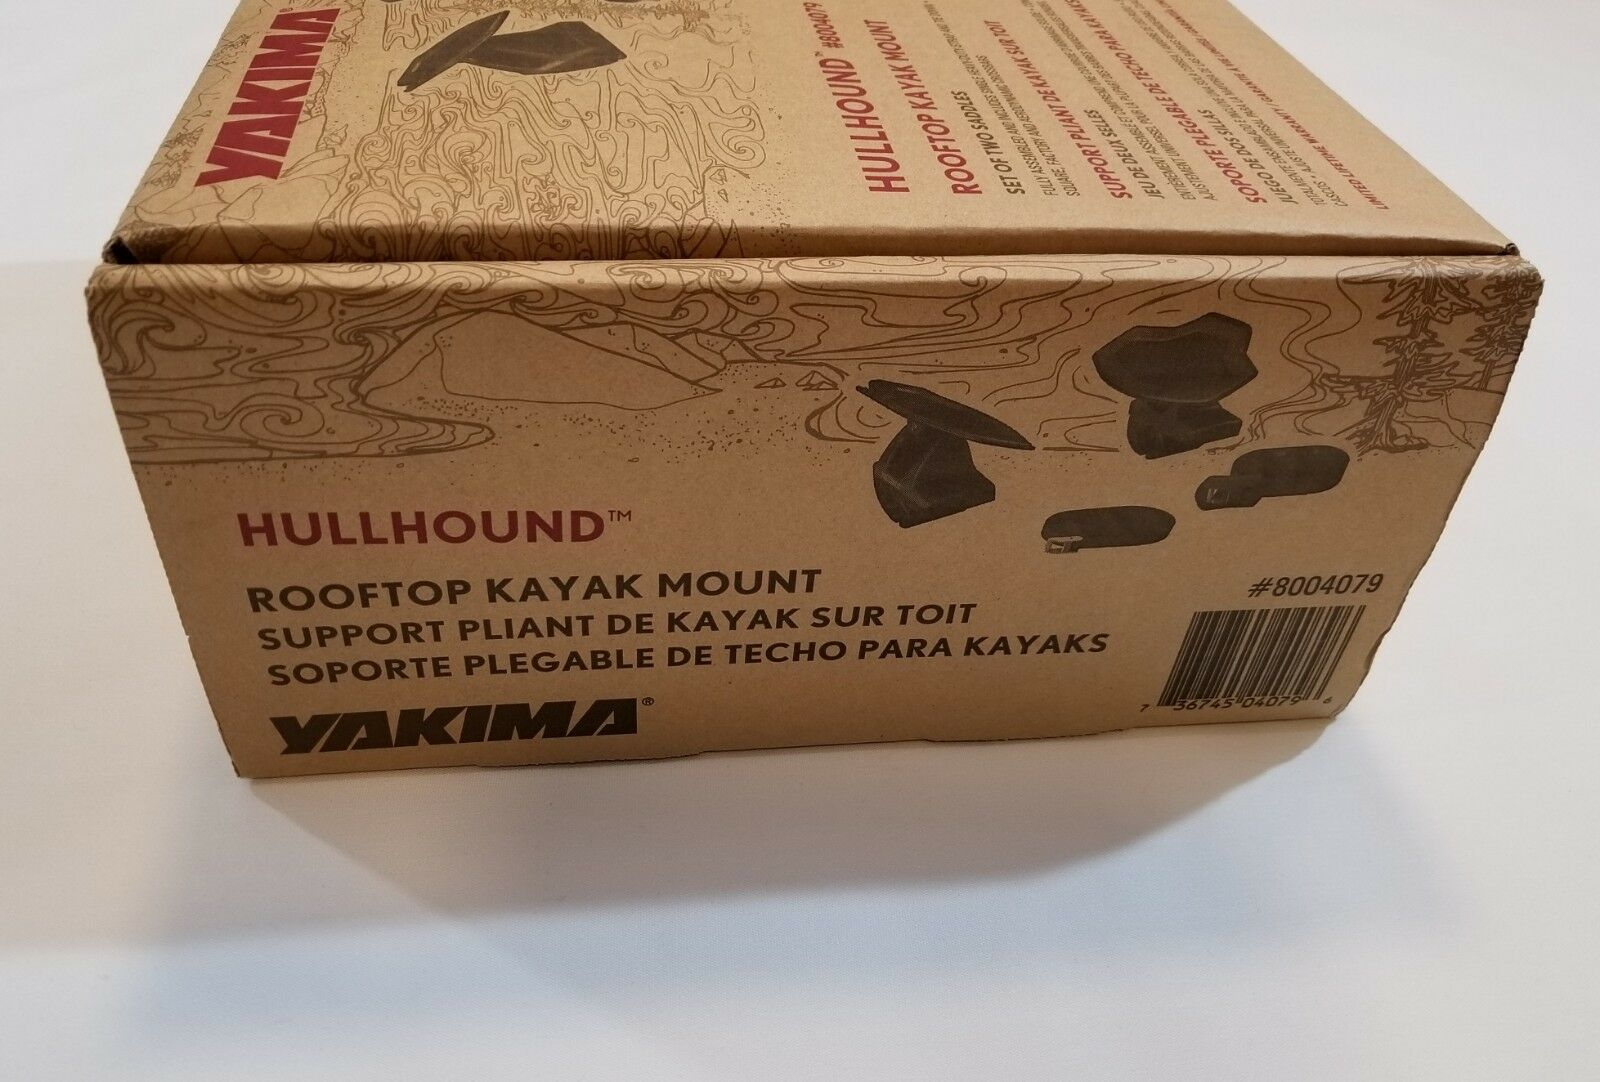 Yakima HullHound Rooftop Kayak Mount Two Sets of Saddles, New with Box